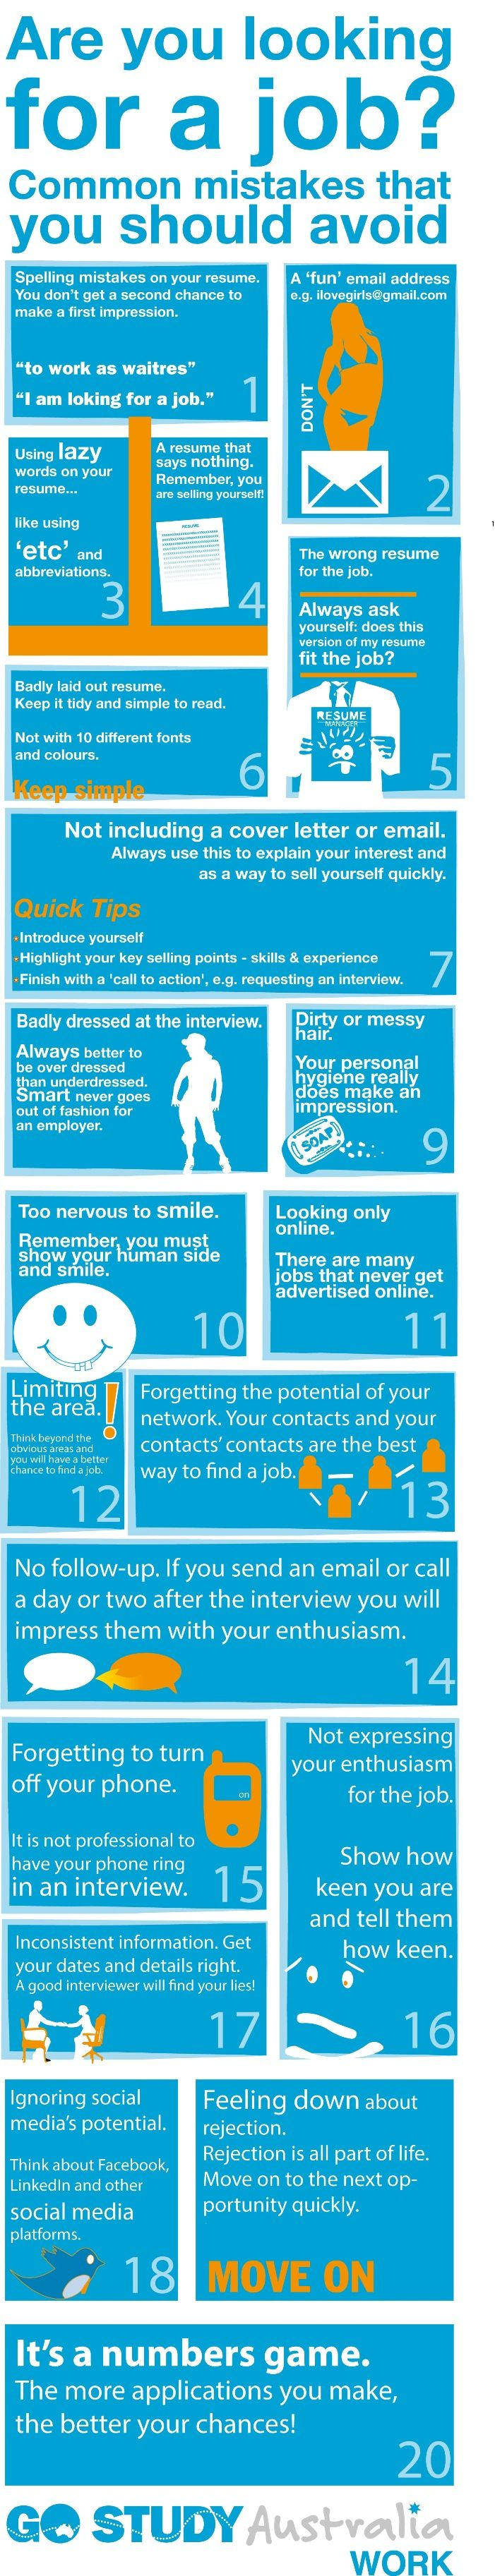 17 Best images about Resume Tips on Pinterest | Resume ...